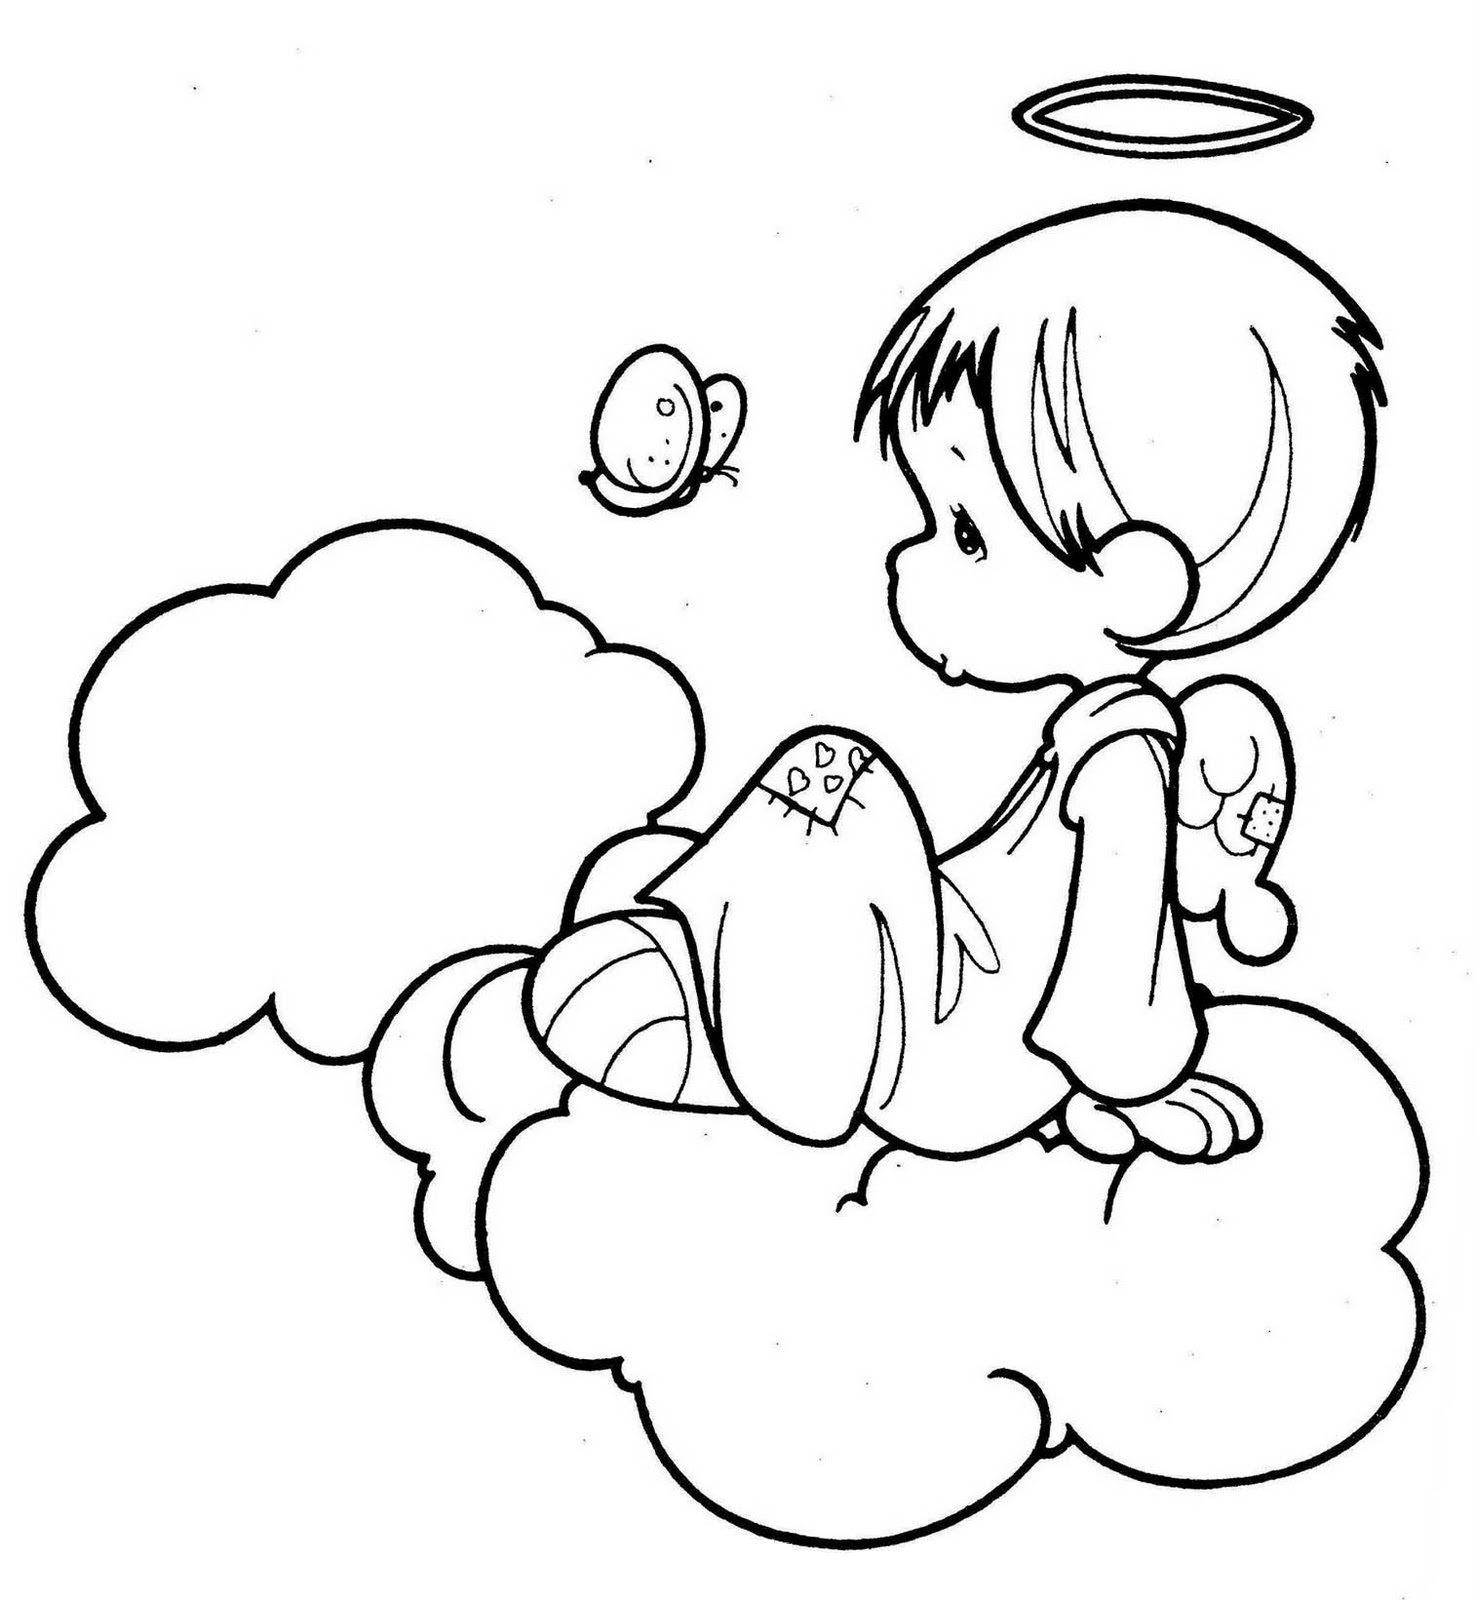 colouring pictures of angels angel coloring pages download and print angel coloring pages pictures angels of colouring